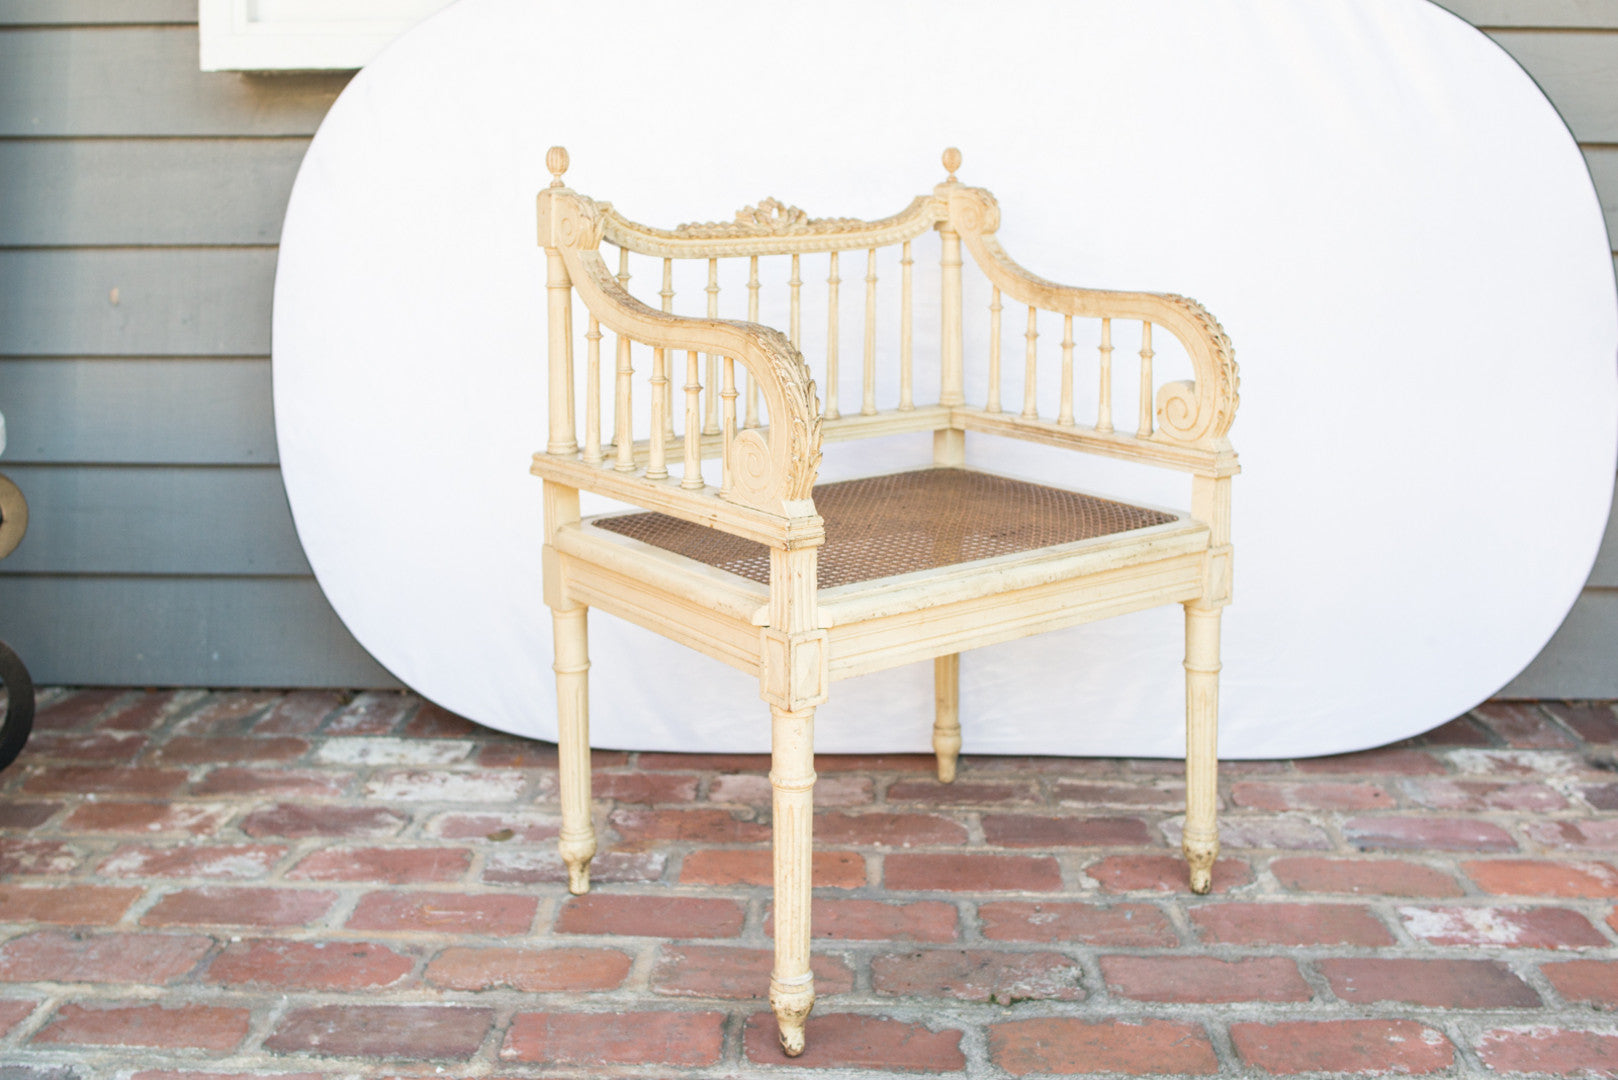 2 Elegant French Caned Armchairs 19th C. France